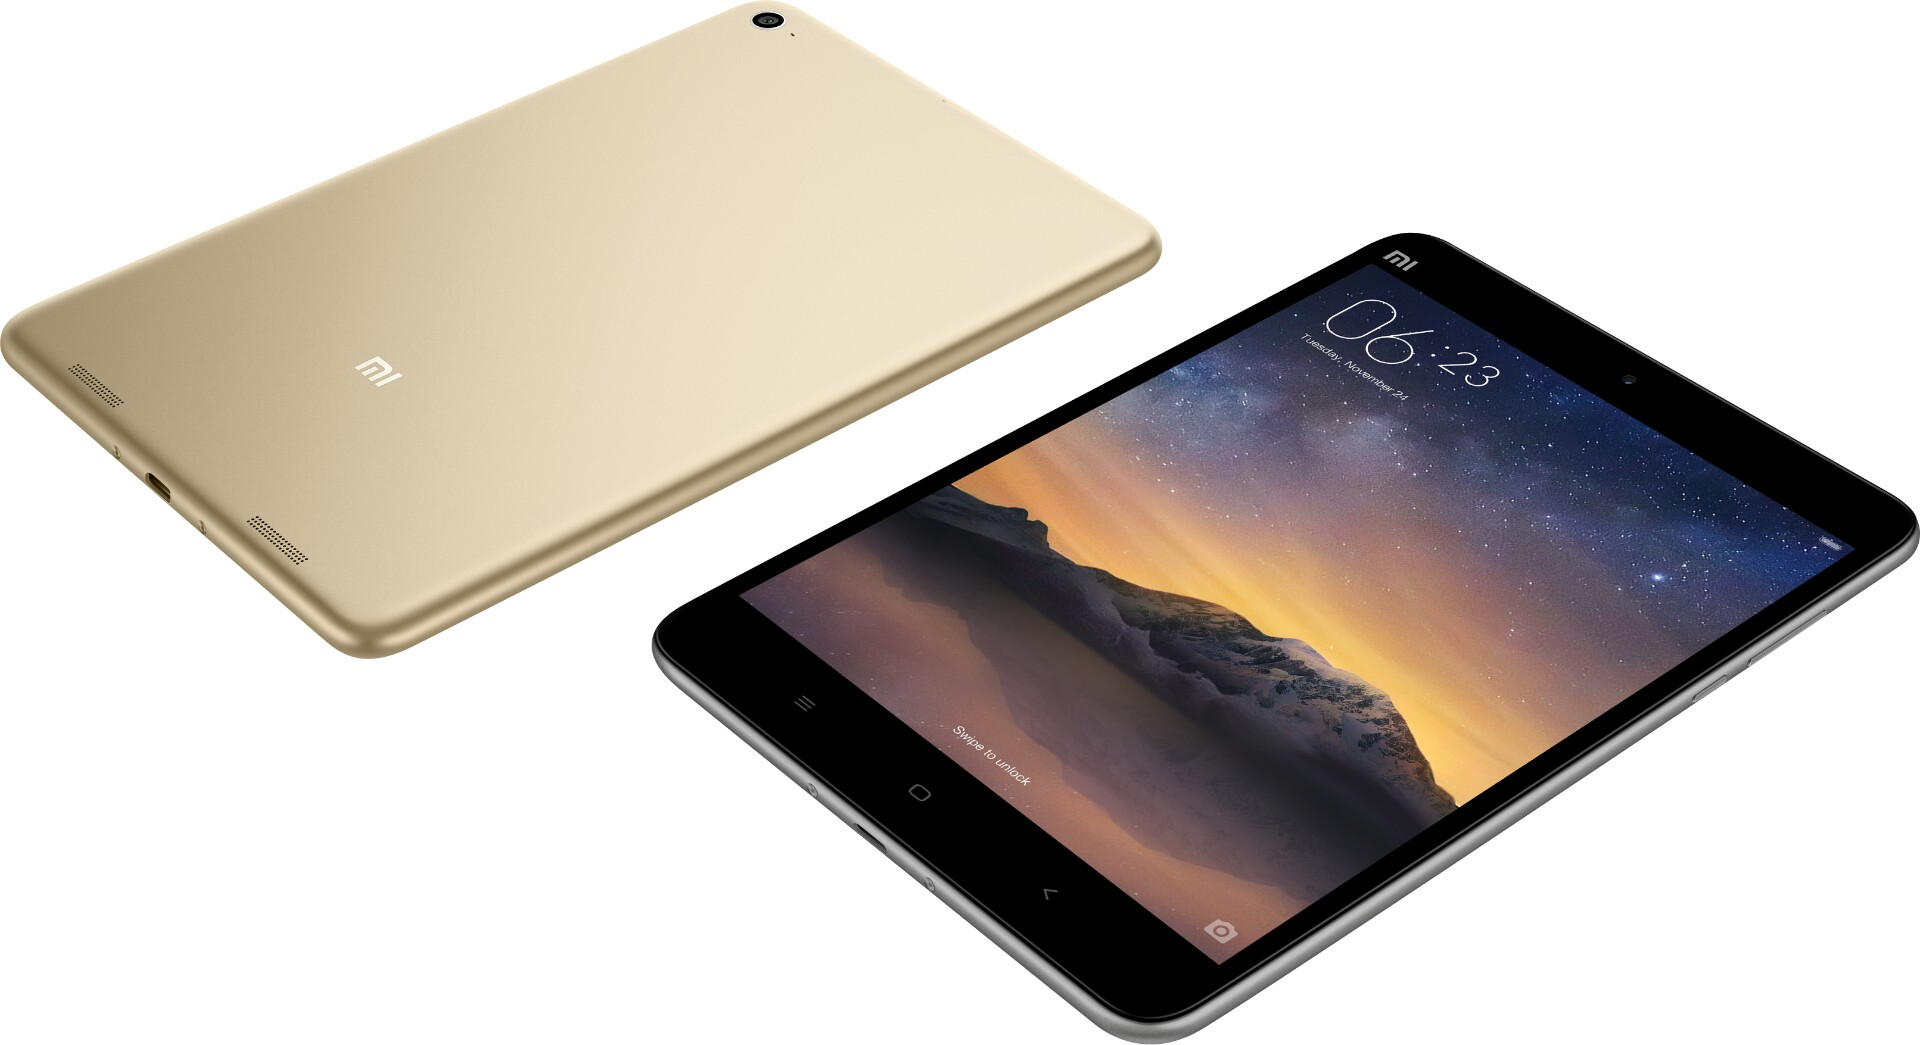 Xiaomi's Mi Pad 2 might look like an iPad Mini, but it runs either Android or Windows 10.